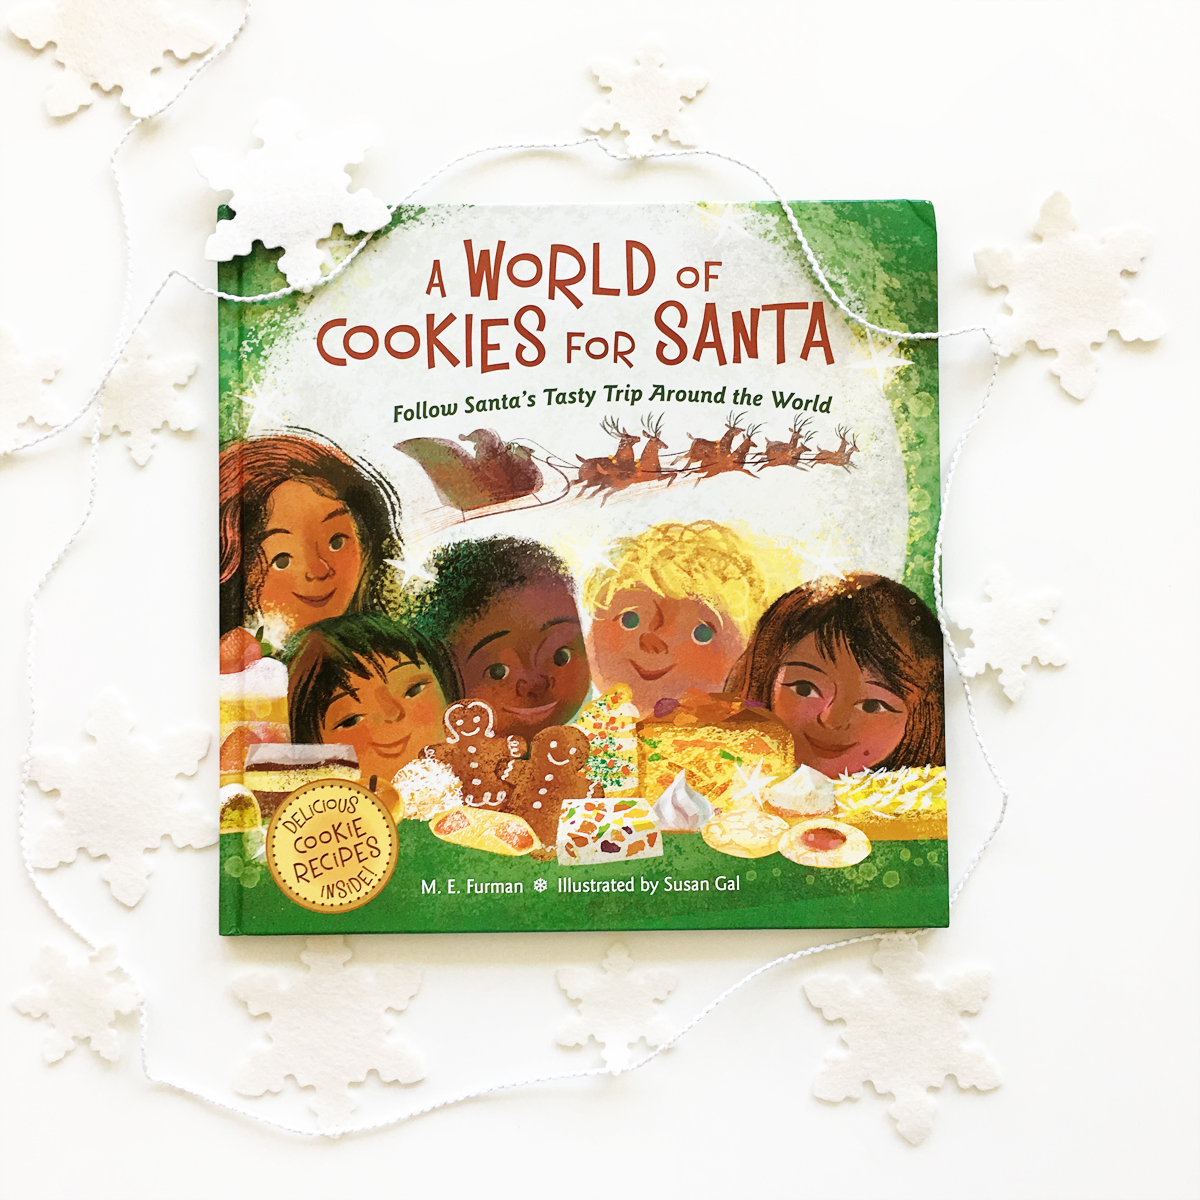 A World of Cookies for Santa: Follow Santa's Tasty Trip Around the World | Books For Diversity